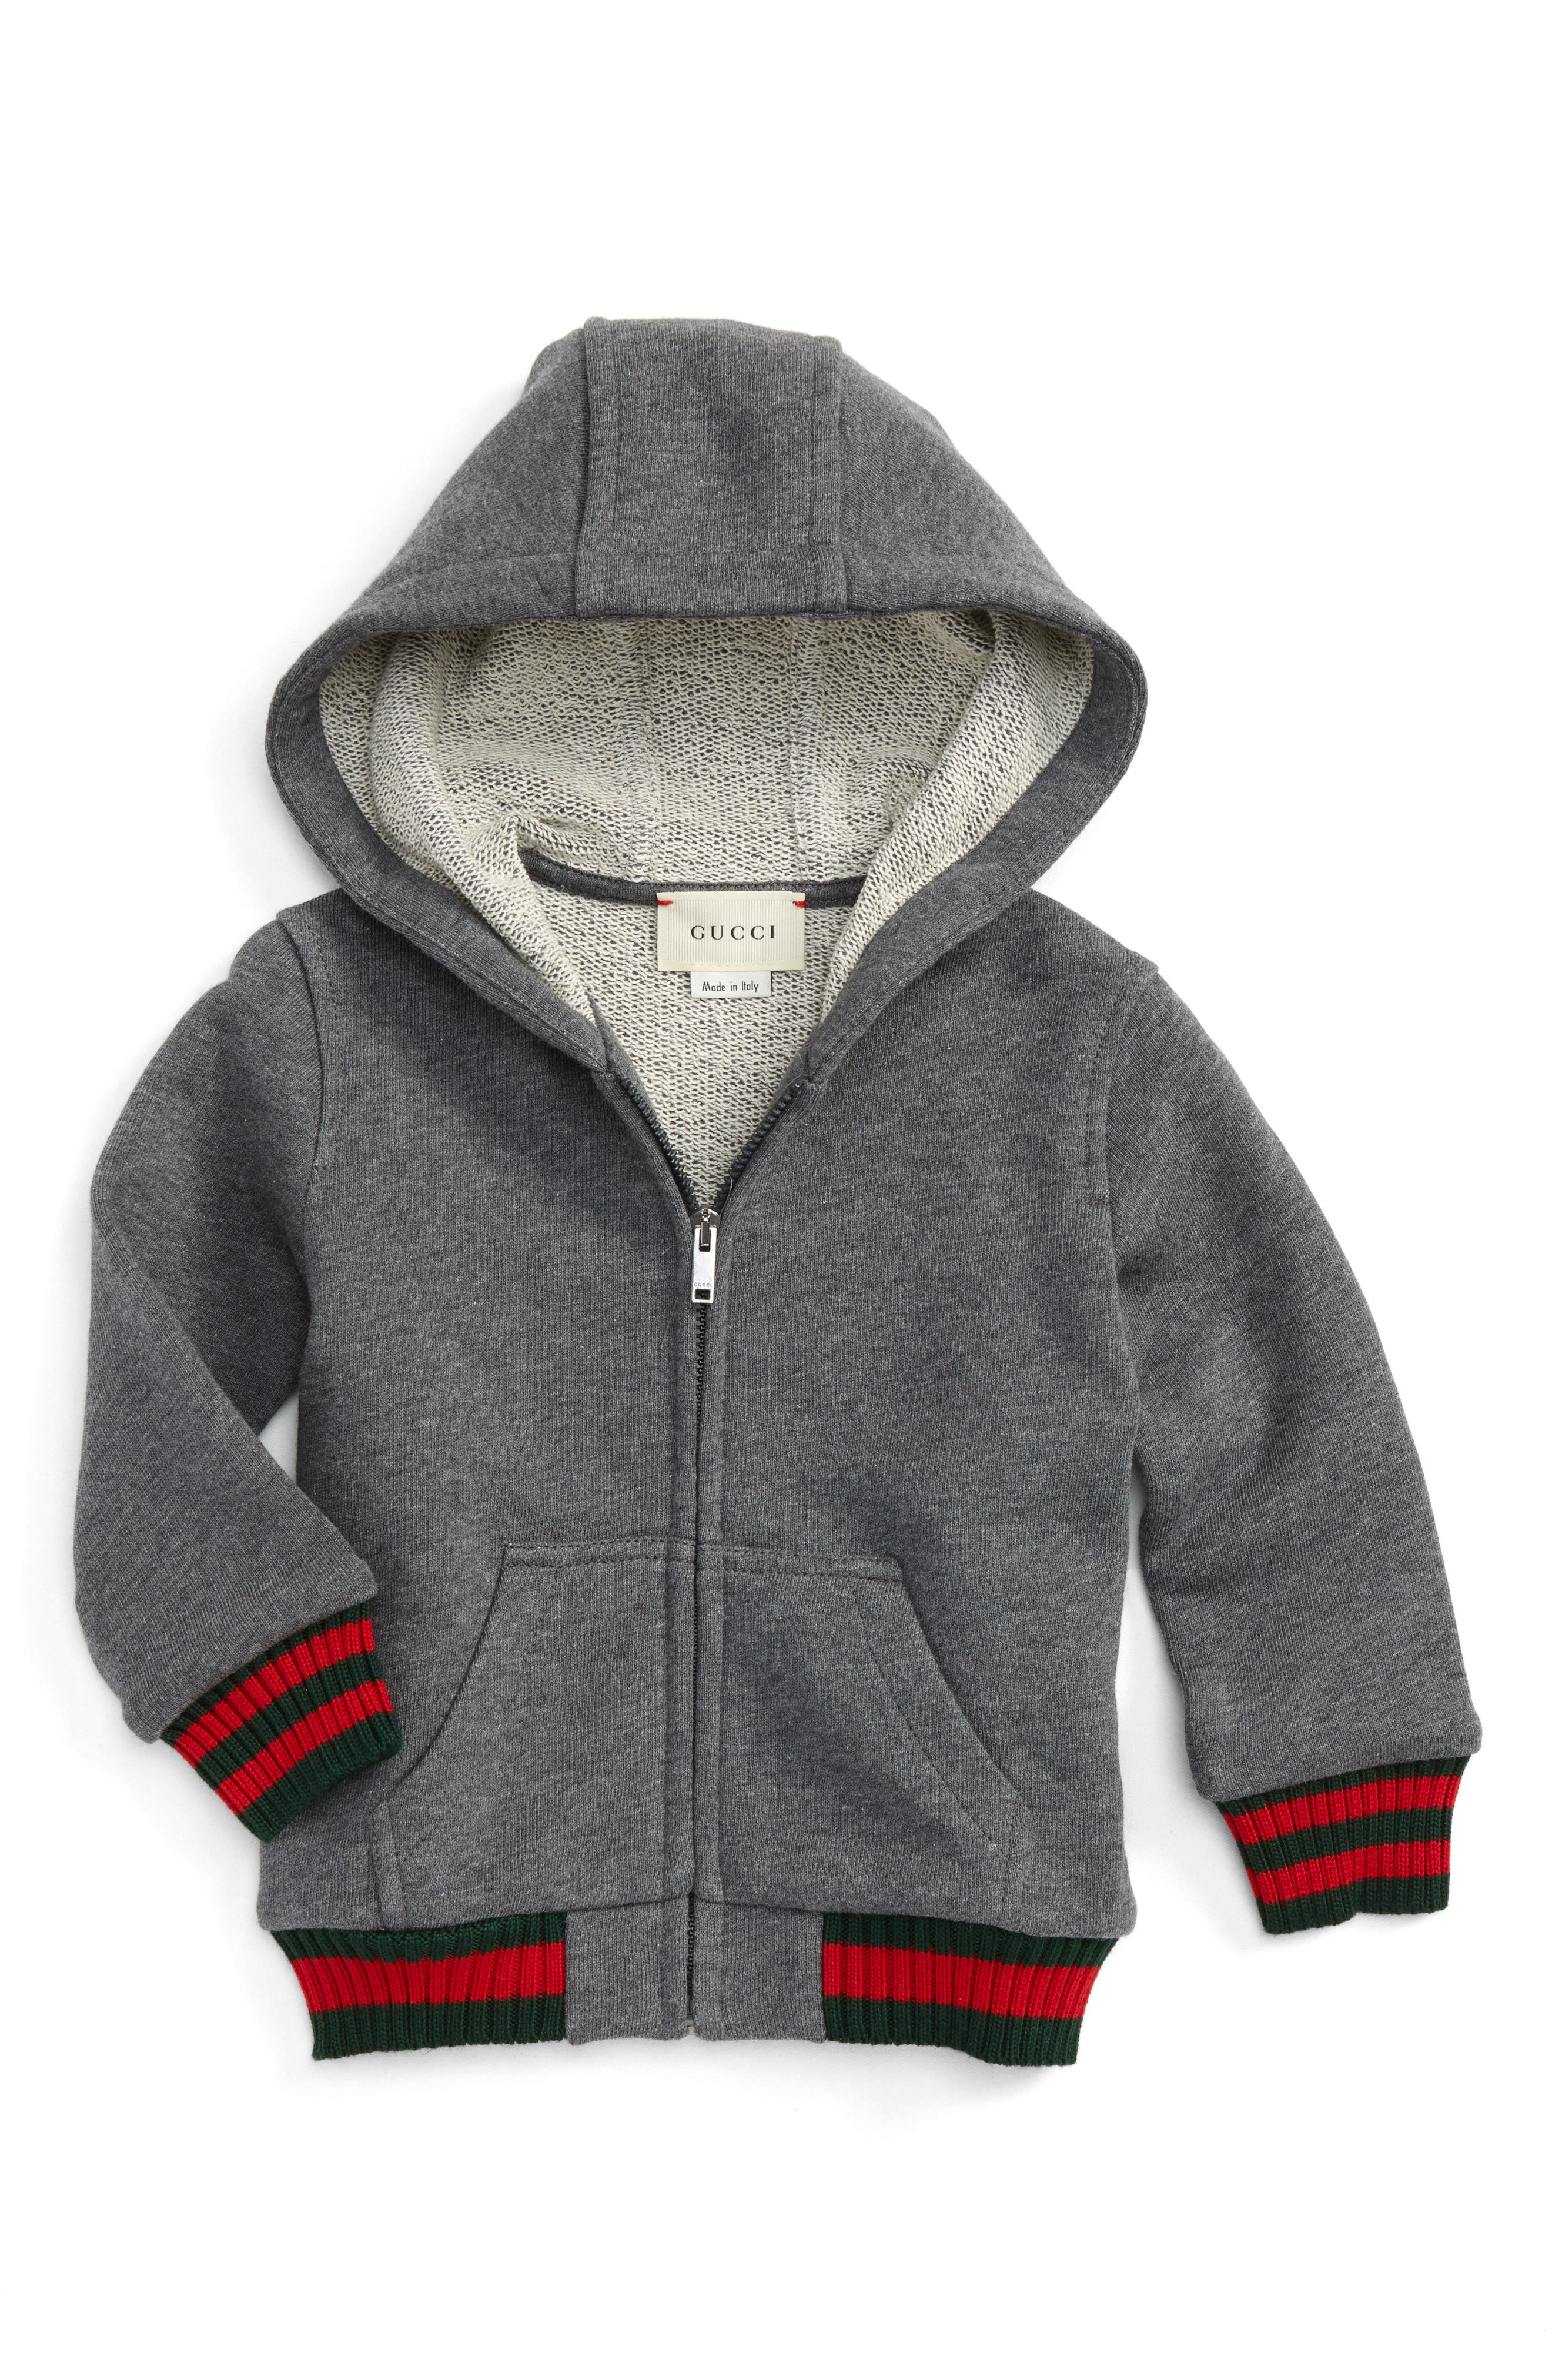 Alternate Image 1 Selected - Gucci Felted Jersey Hoodie (Baby)